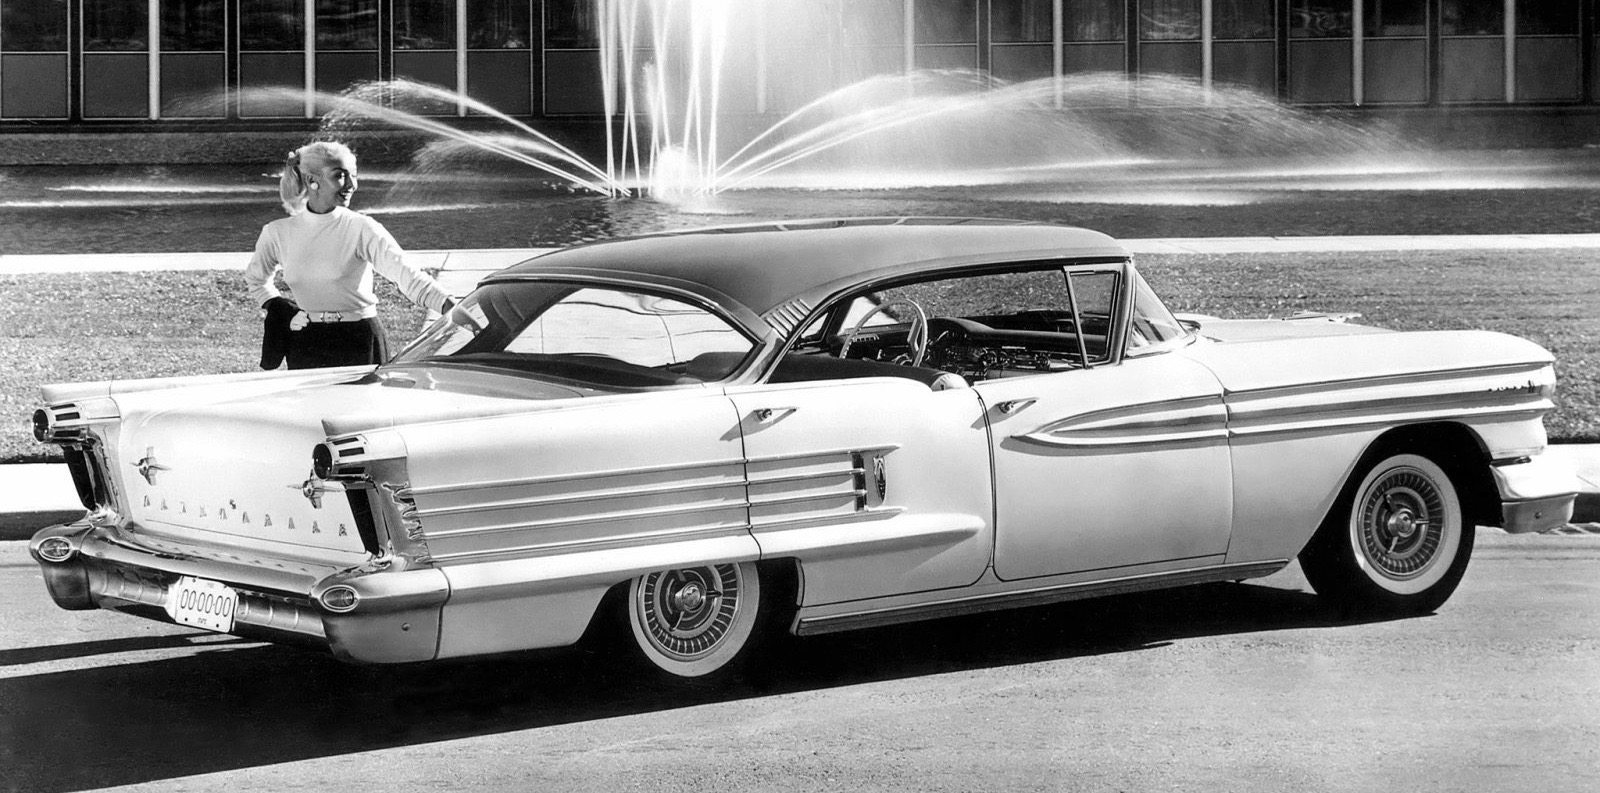 Car Style Critic Baroque Rococo Styling Late 1950s And Now American Cars Oldsmobile 1958 Ninety Eight Holiday Sedan Like Buicks 58 Oldsmobiles Received A Good Deal Of Seemingly Arbitrarily Shaped Placed Decorative Trim